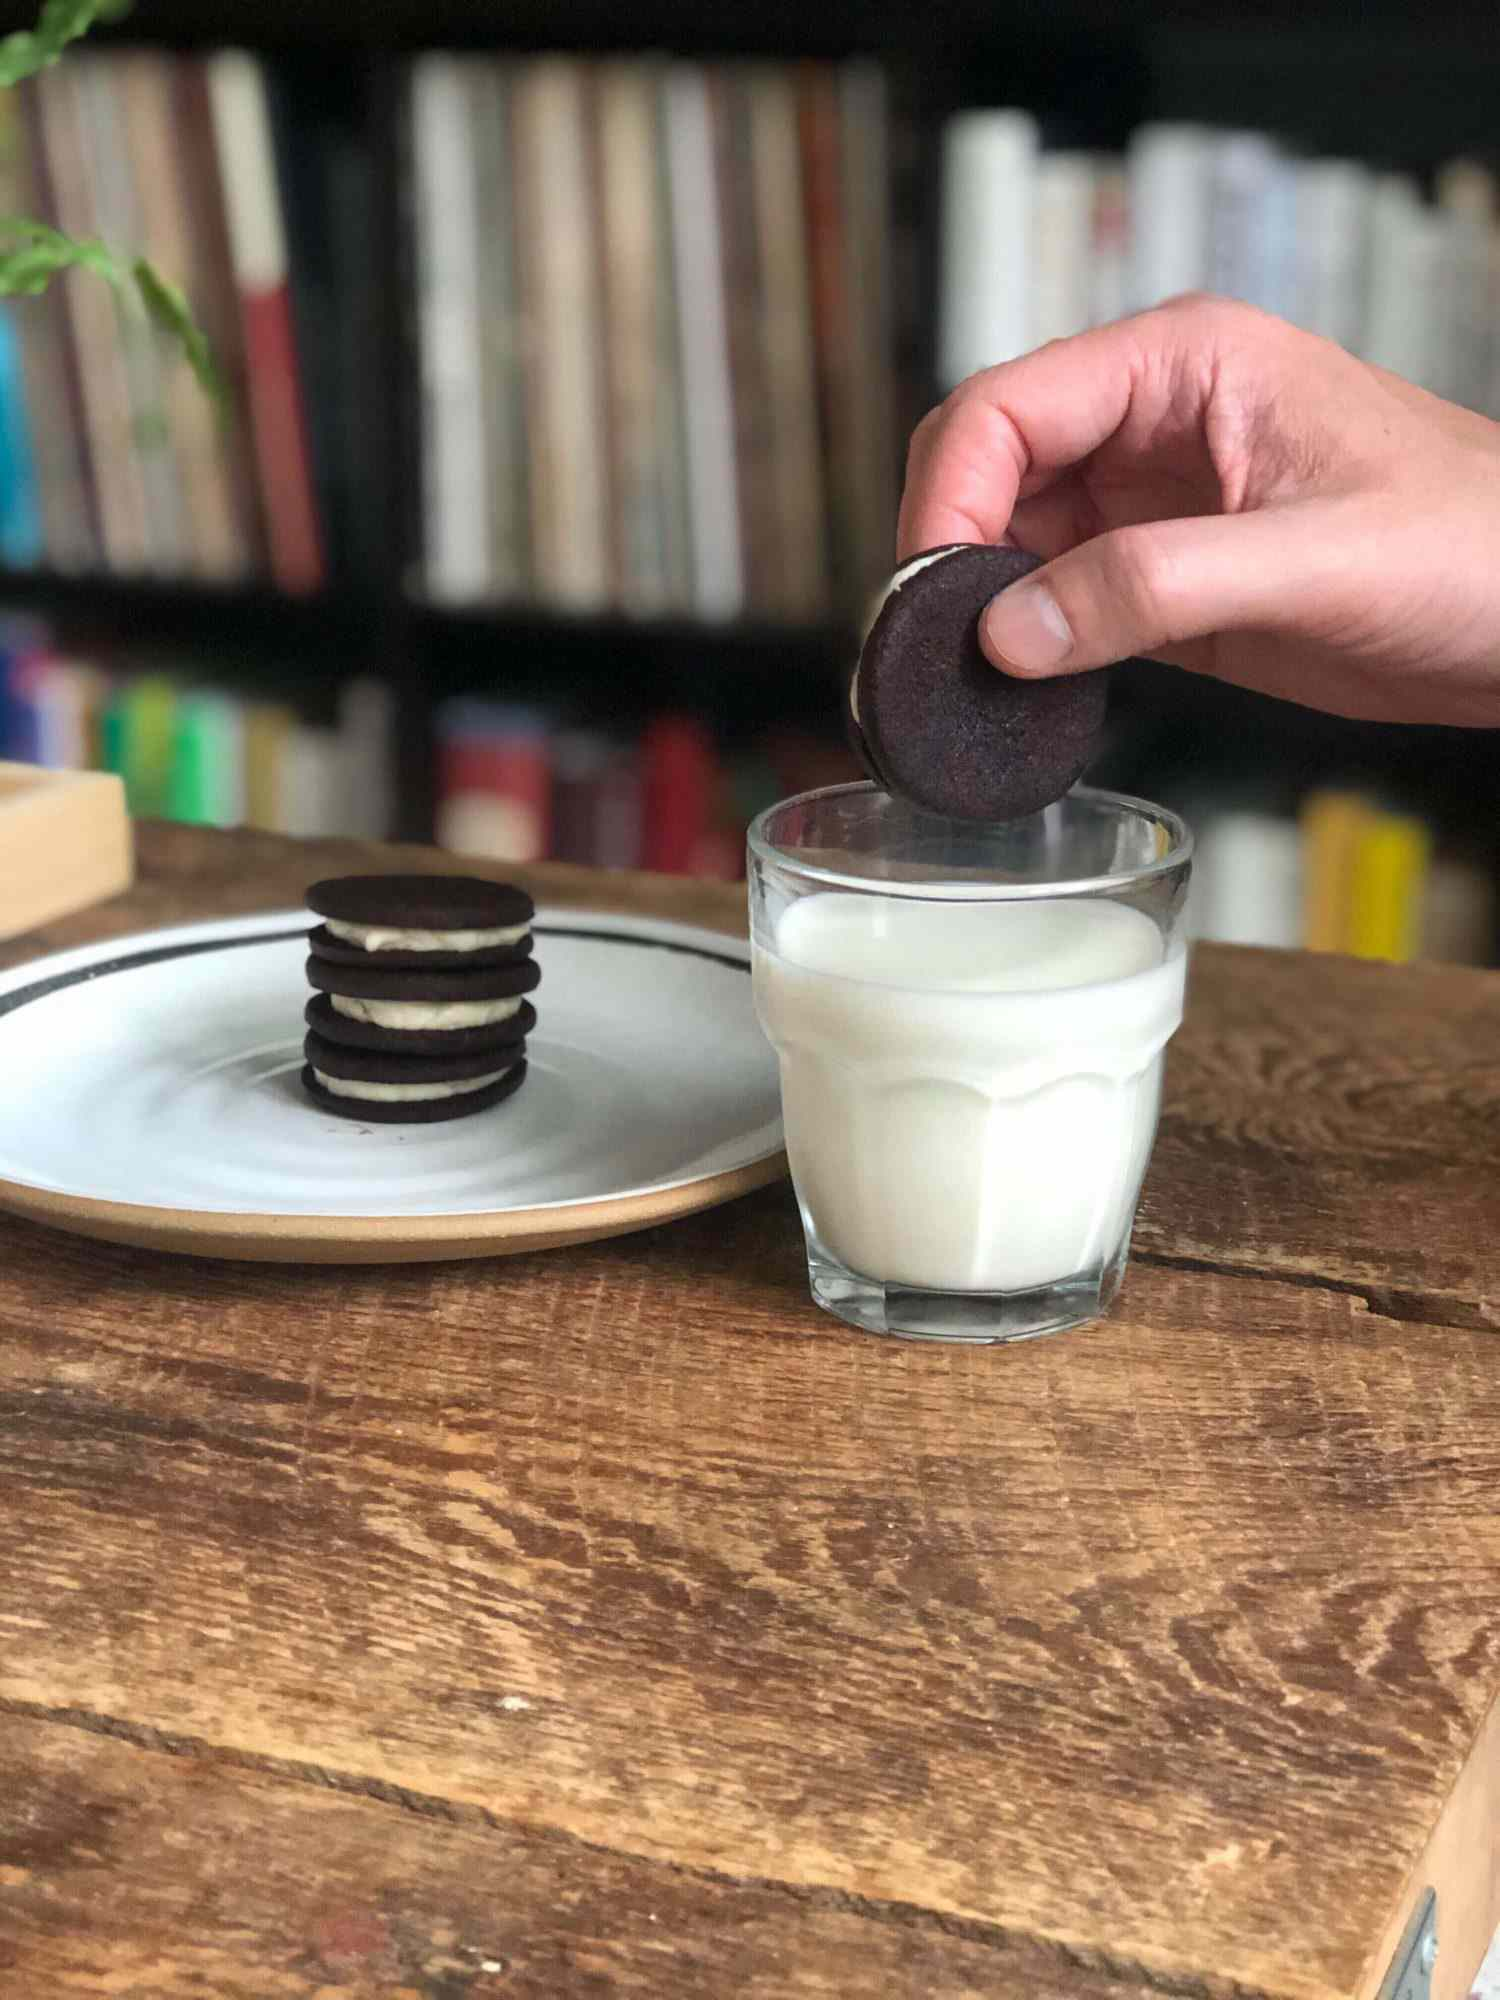 homemade oreo being dipped into glass of milk